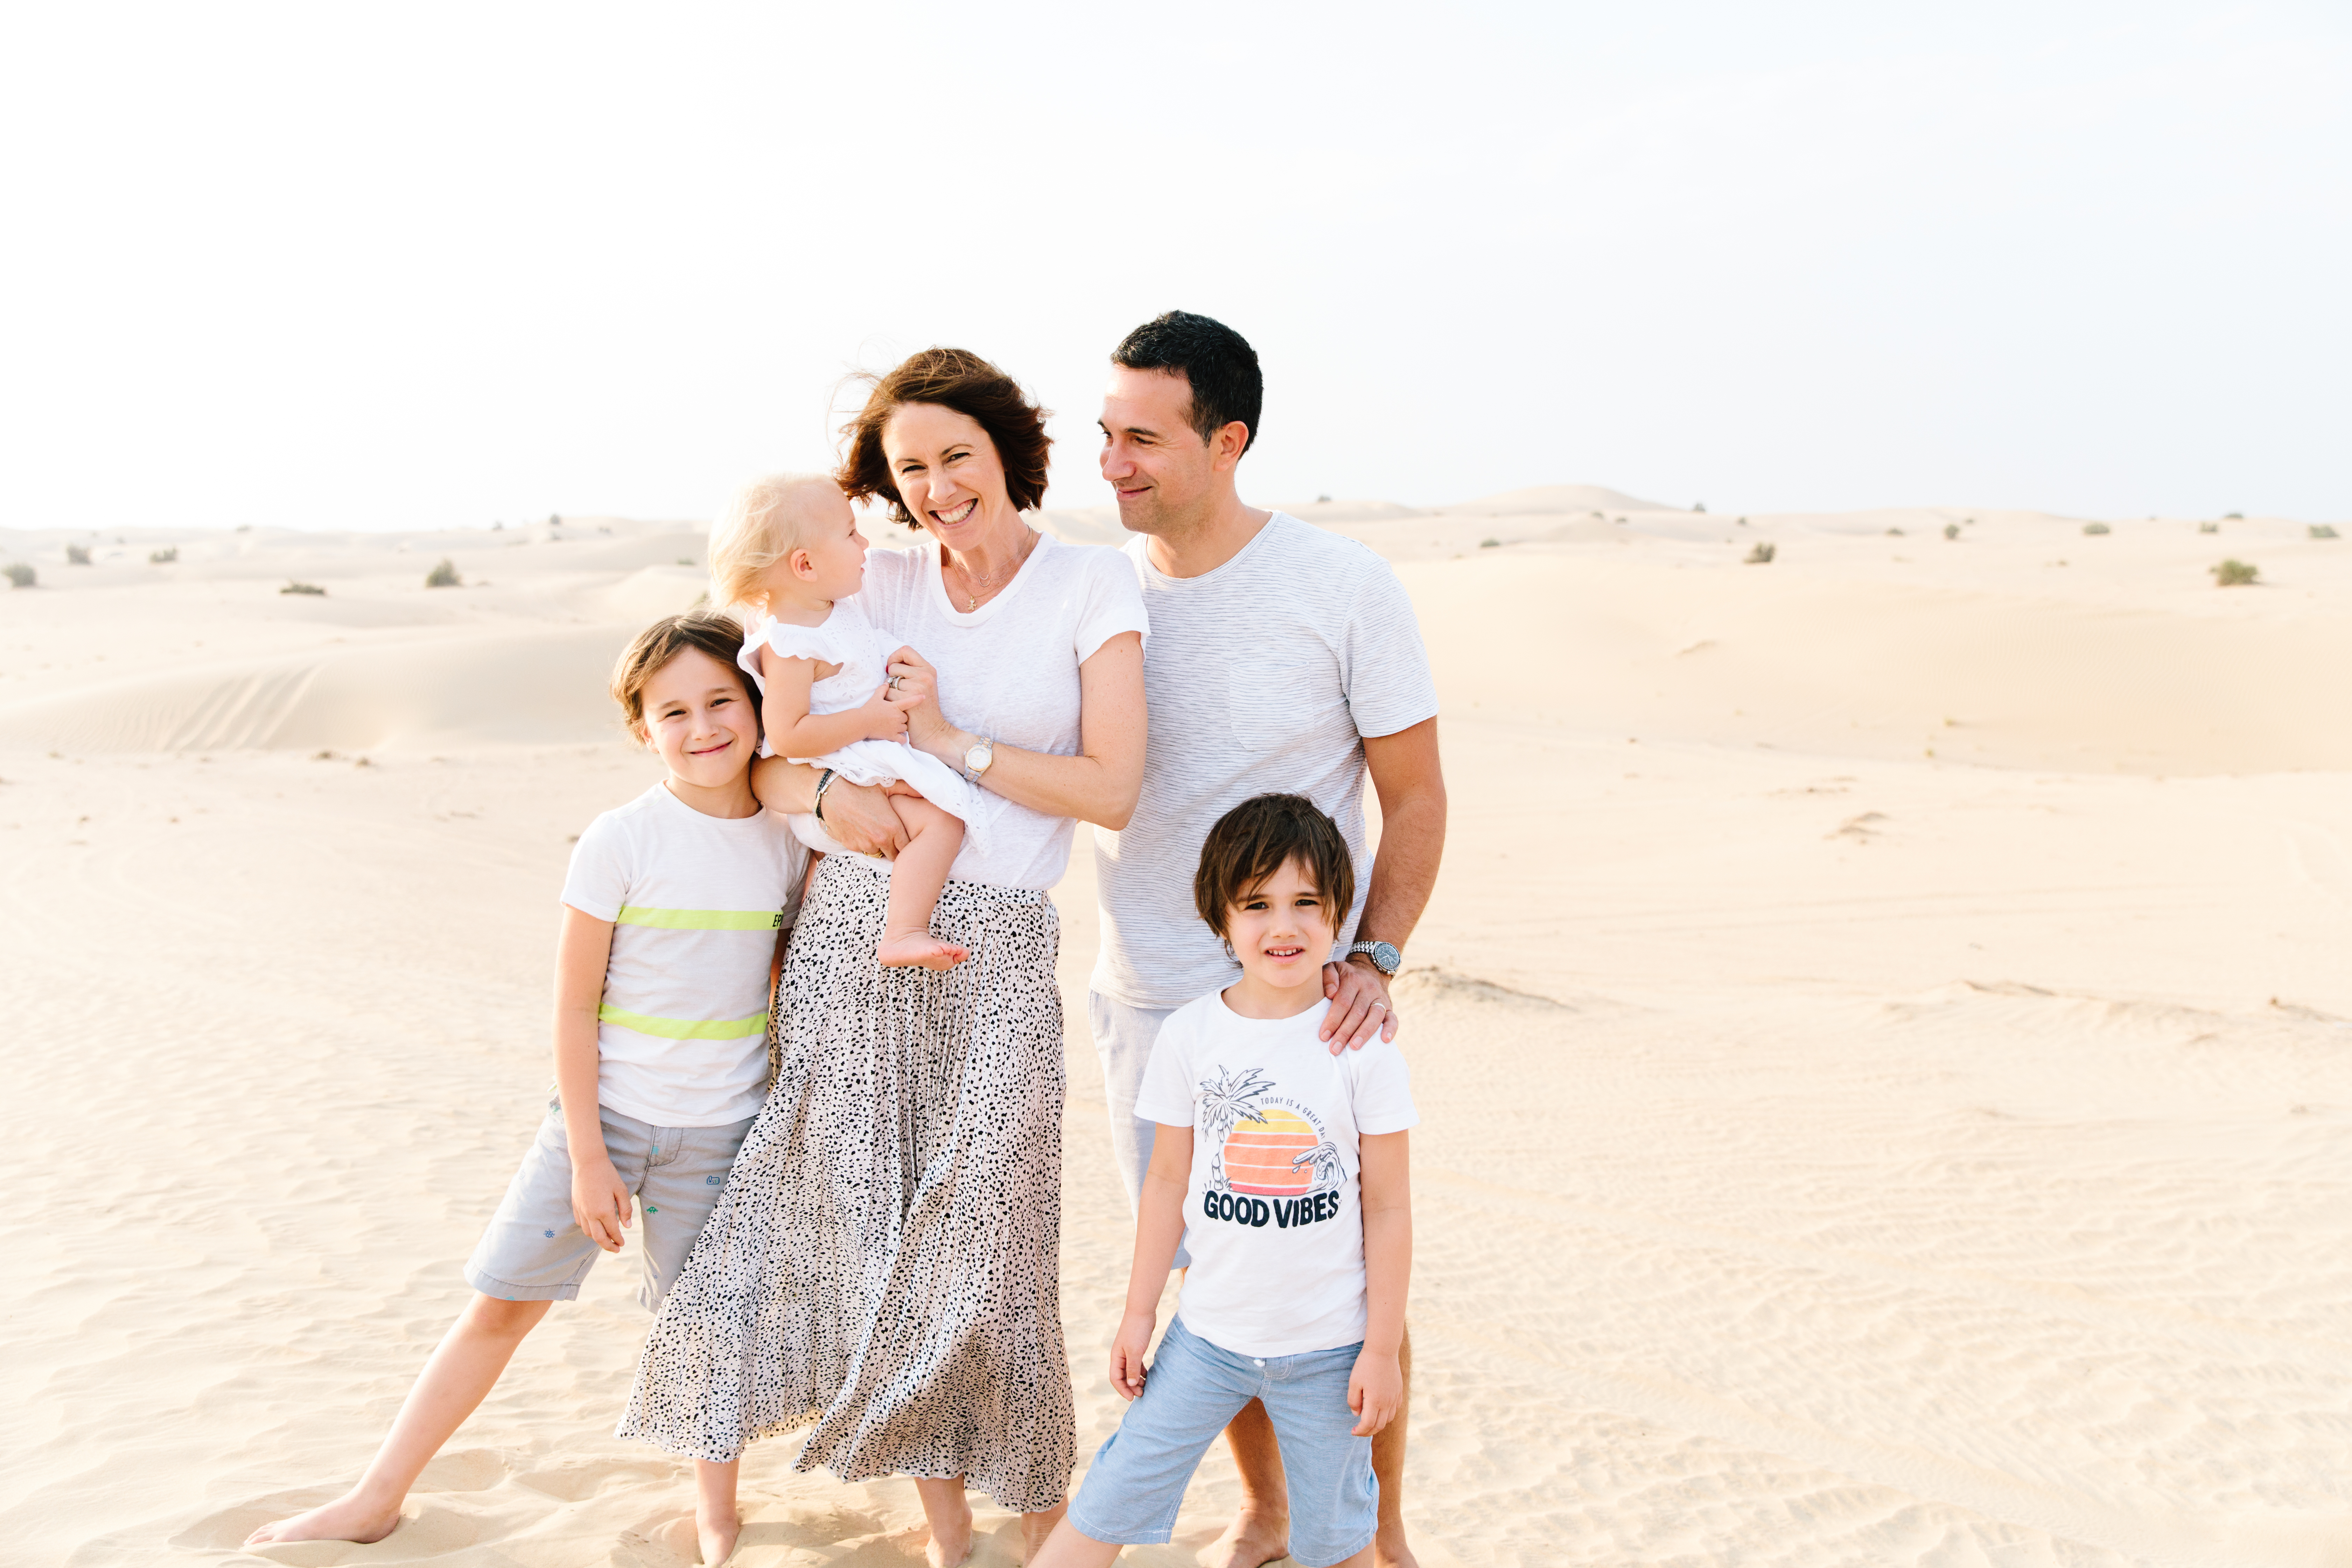 Family photographer dubai